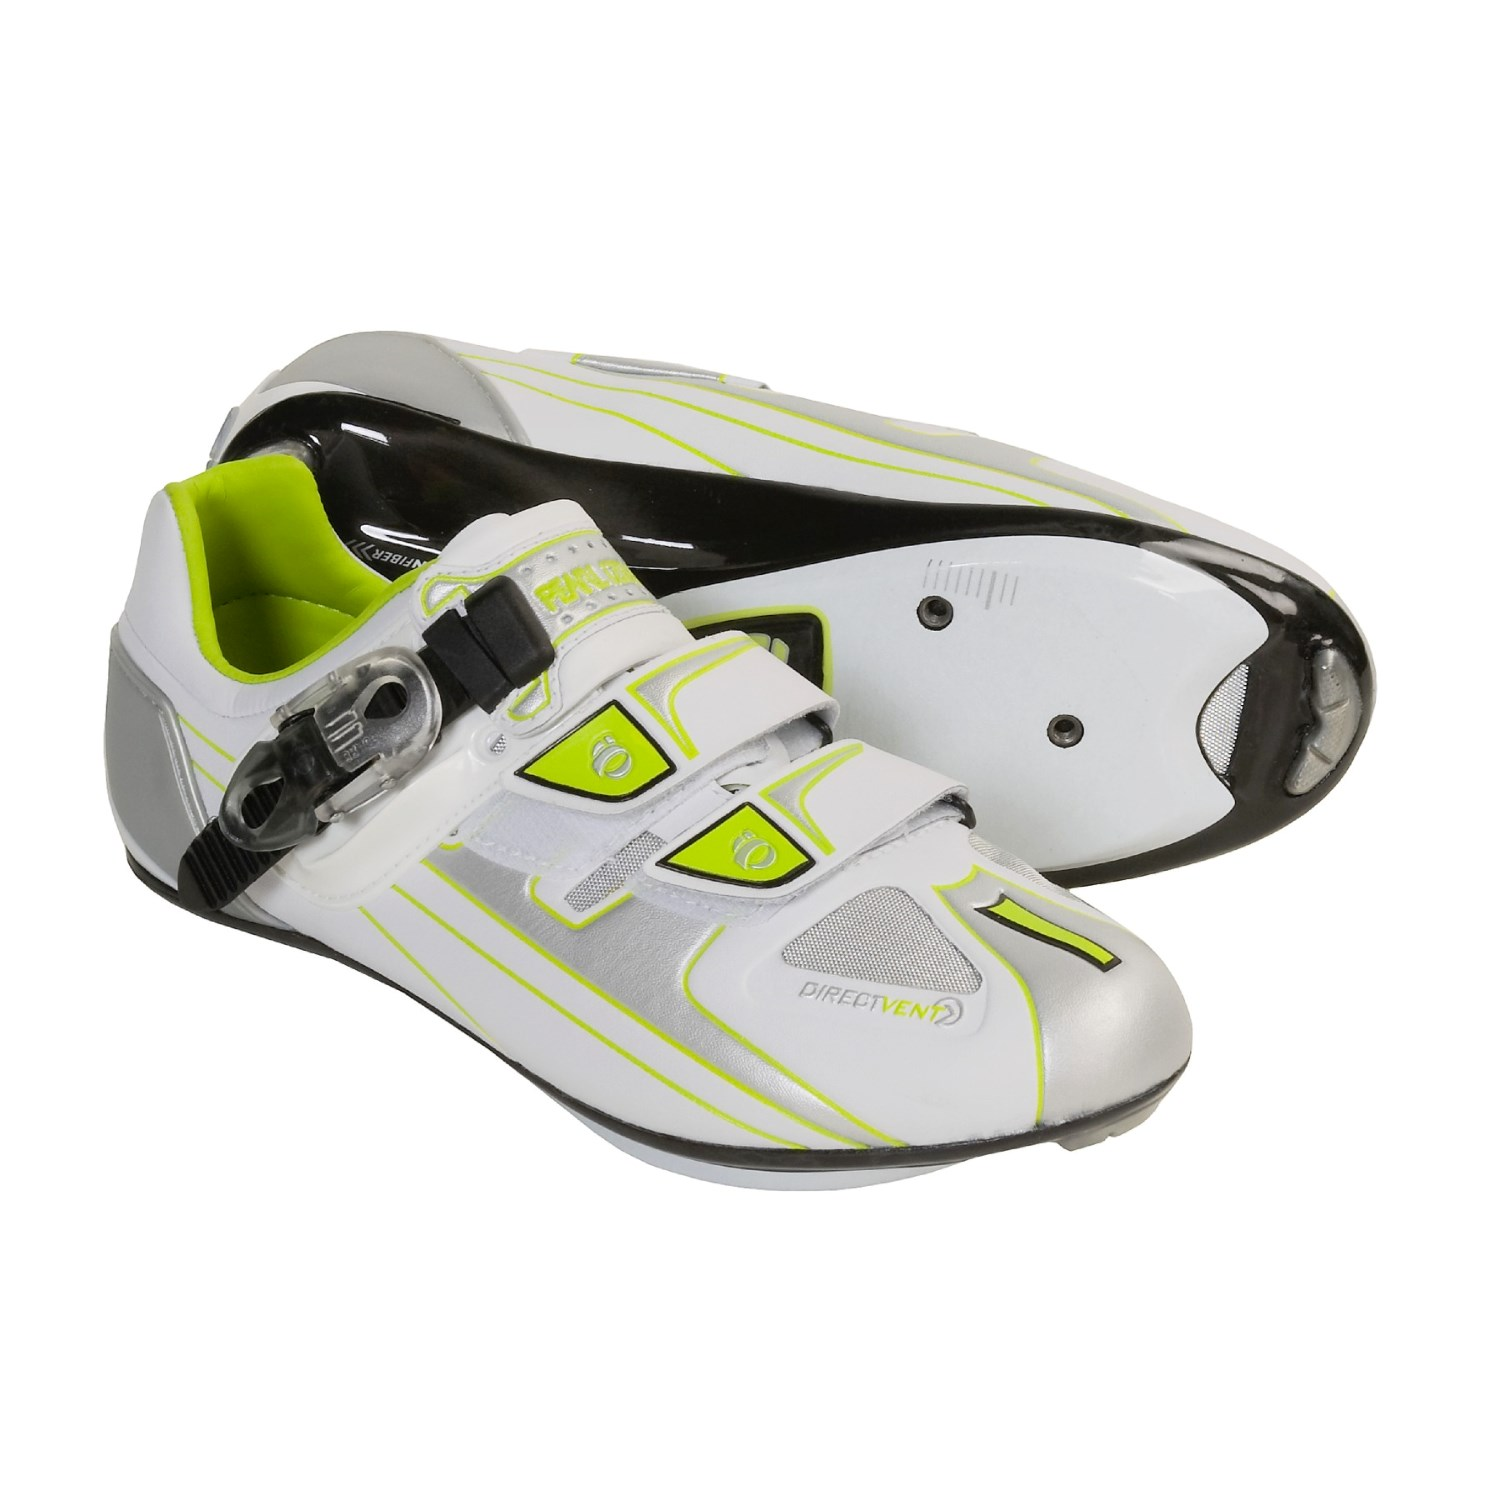 Pearl Izumi Pro Shoes Review